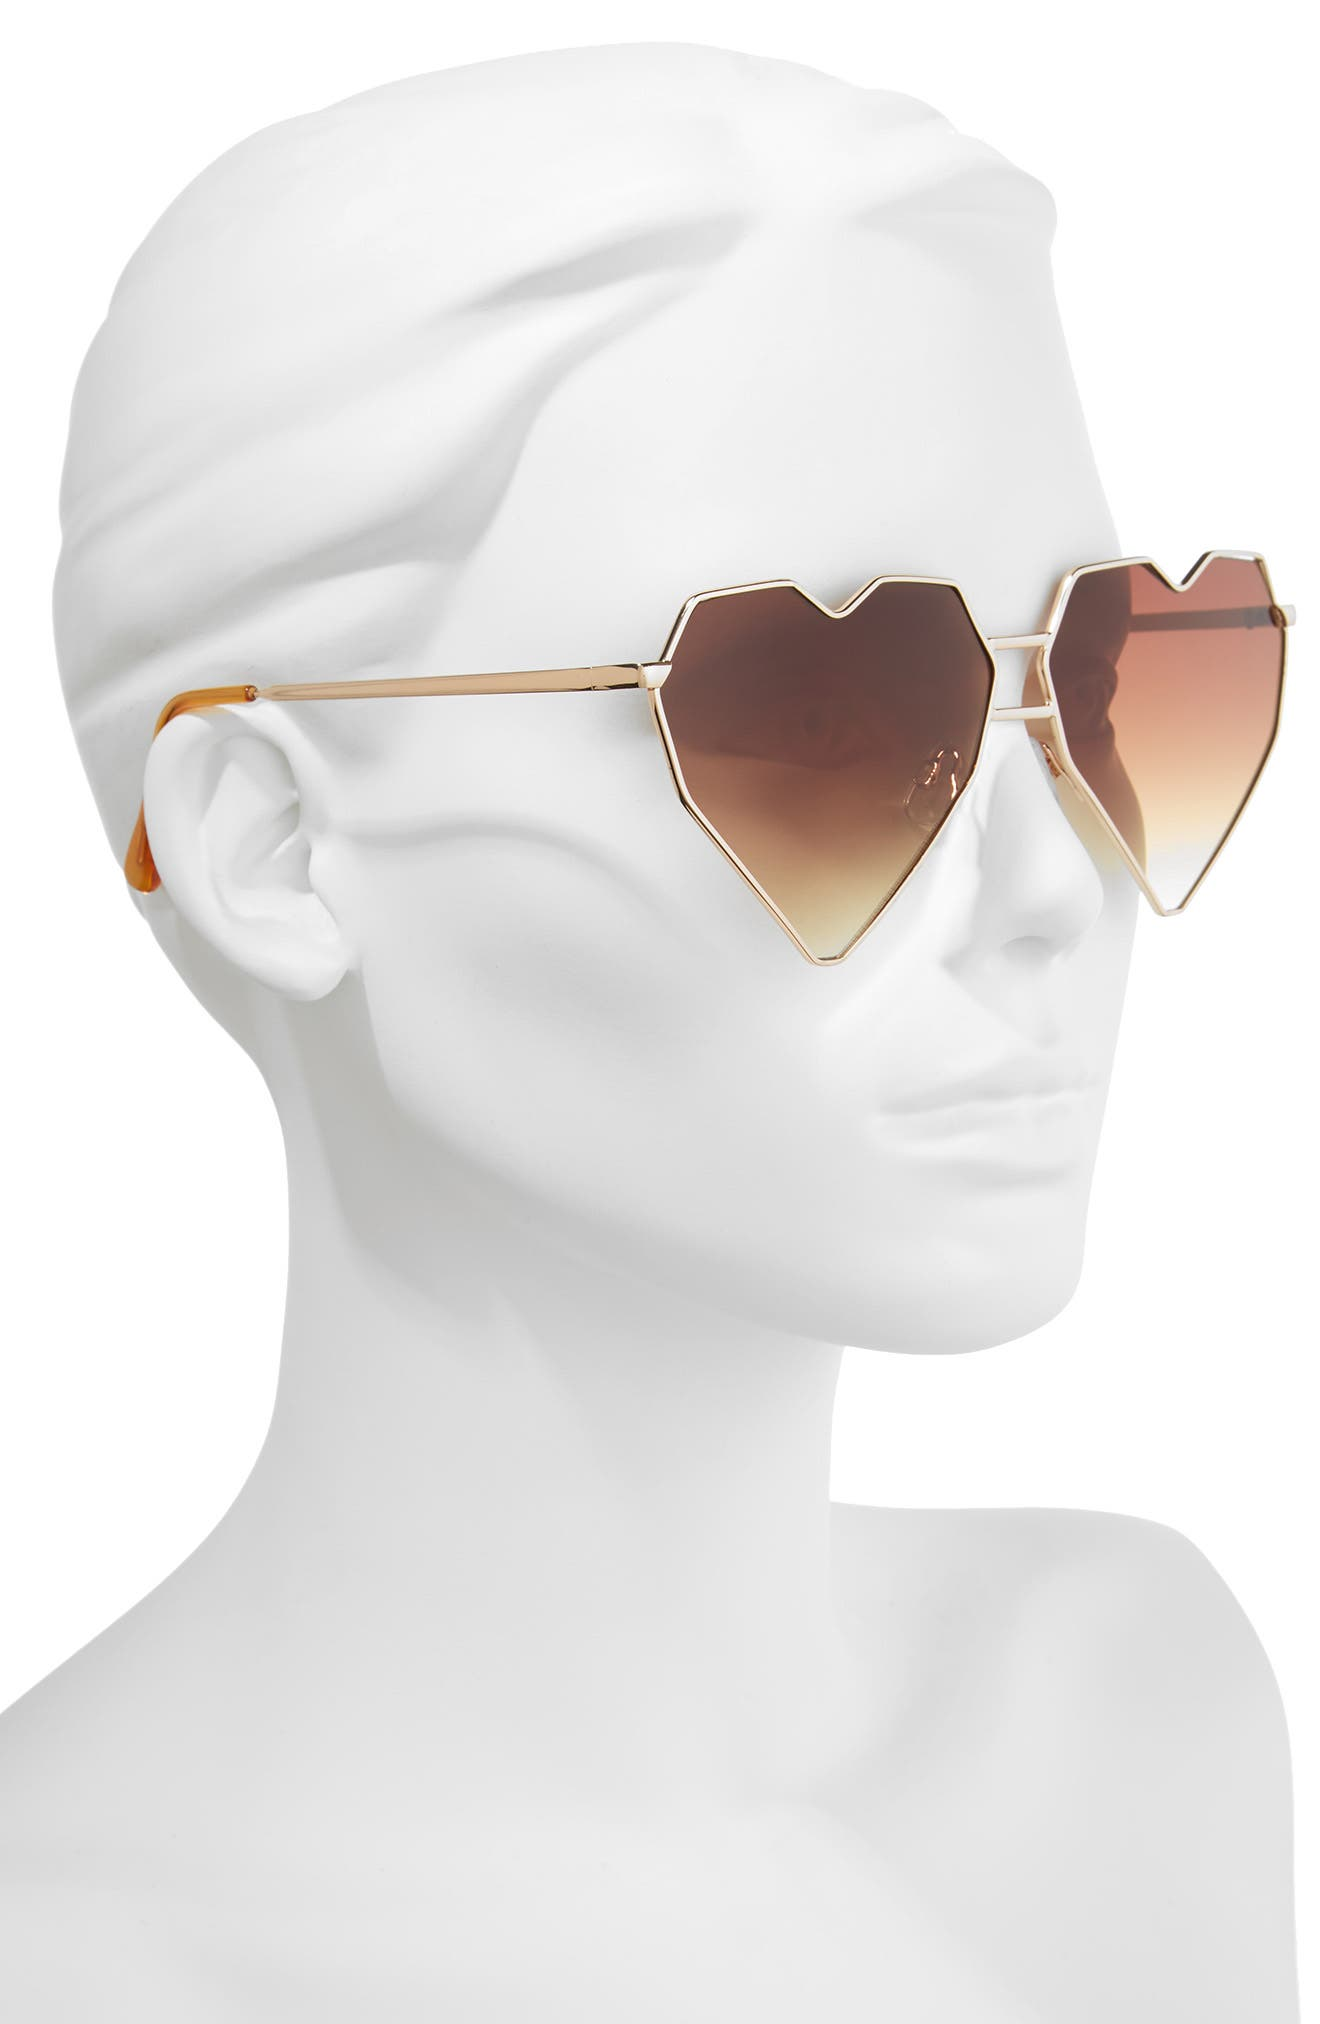 64mm Heart Shaped Sunglasses,                             Alternate thumbnail 2, color,                             Gold